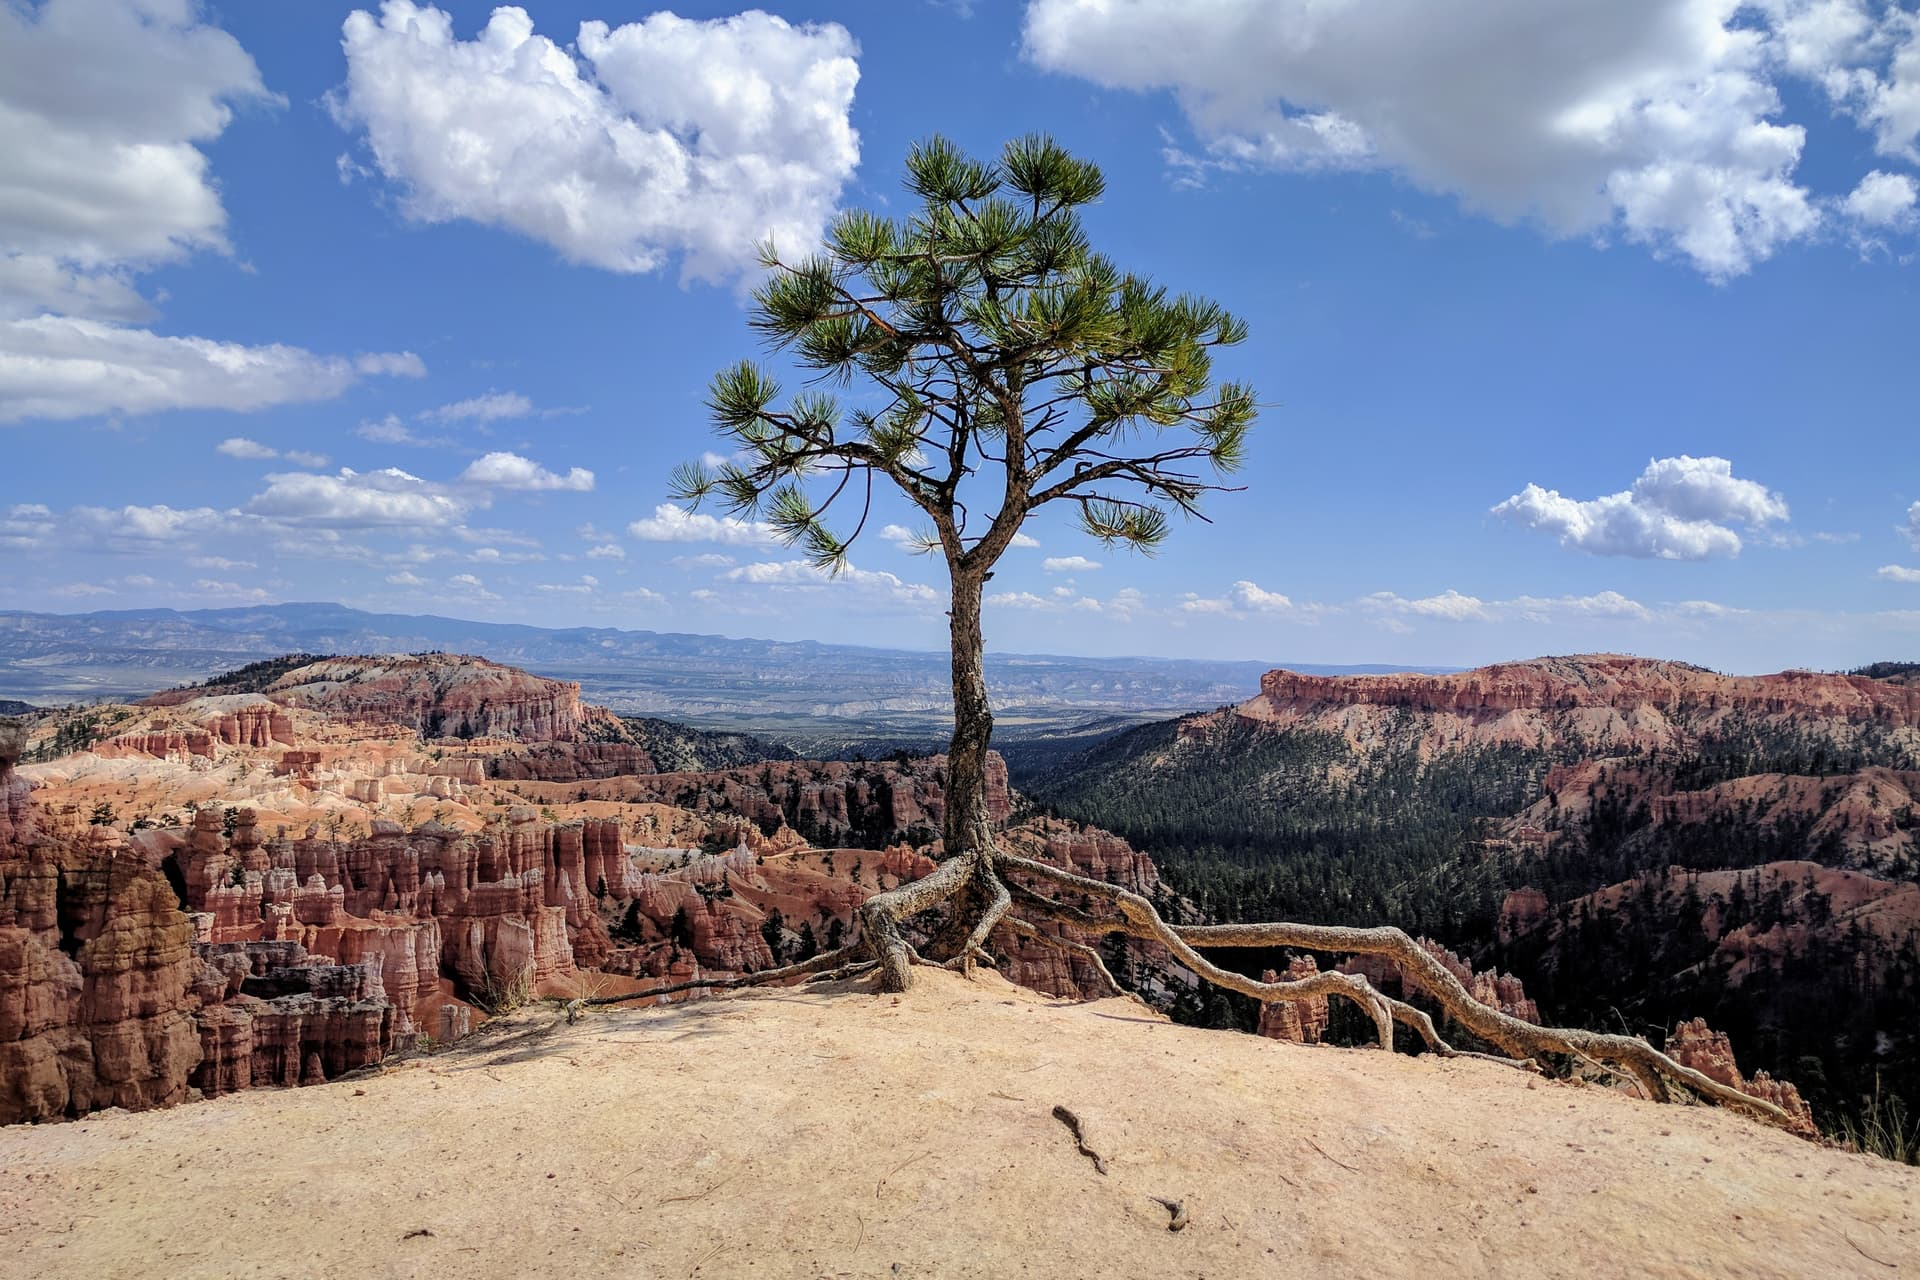 A small pine tree growing right on the rim of Bryce Canyon. The rim has been washed away from below the tree, such that it now stands on its roots, as if it were about to walk away. The red and white rock pillars of Bryce Canyon can be seen beyond it.